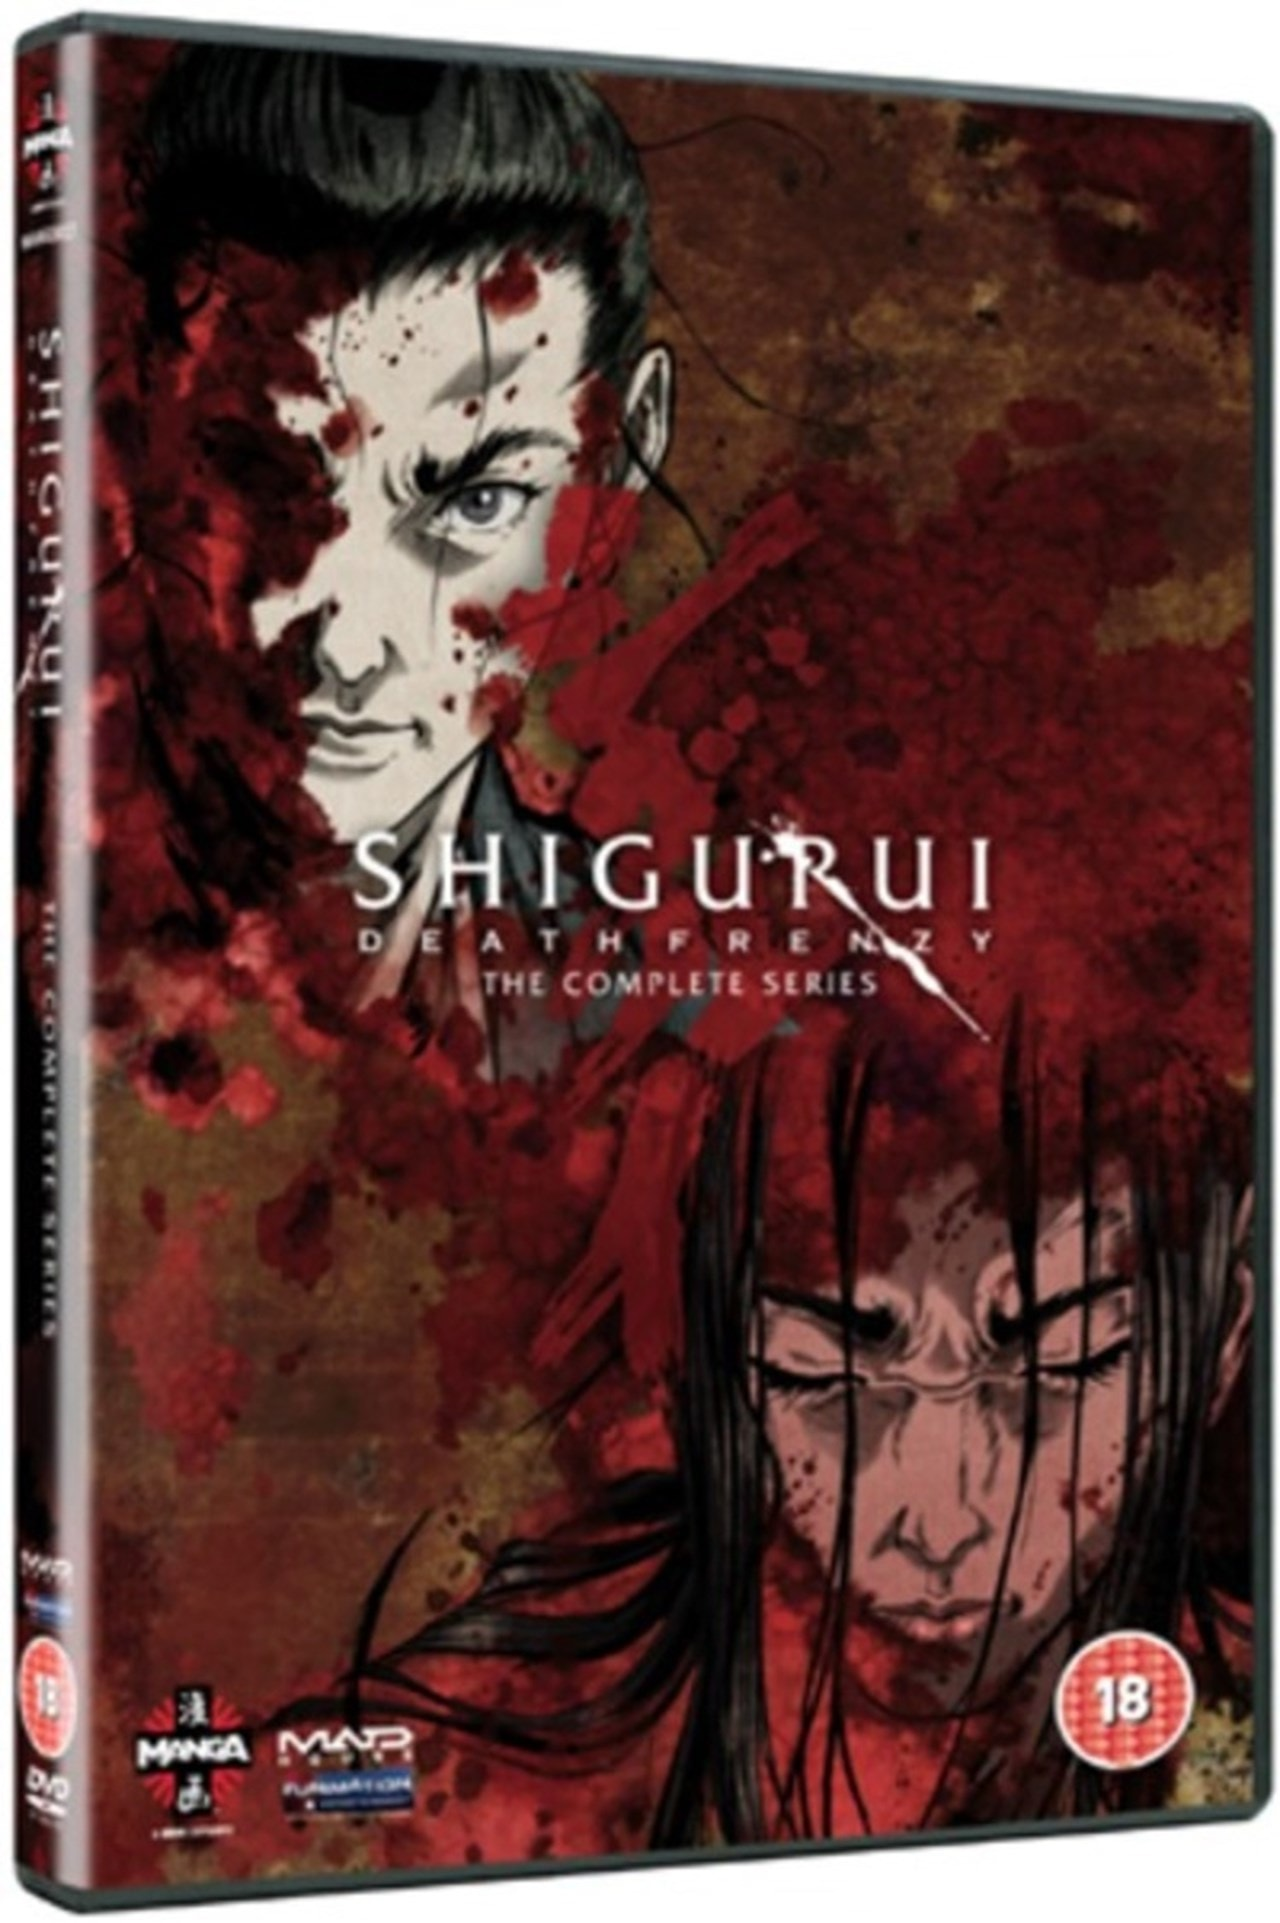 Shigurui - Death Frenzy: The Complete Series - 1